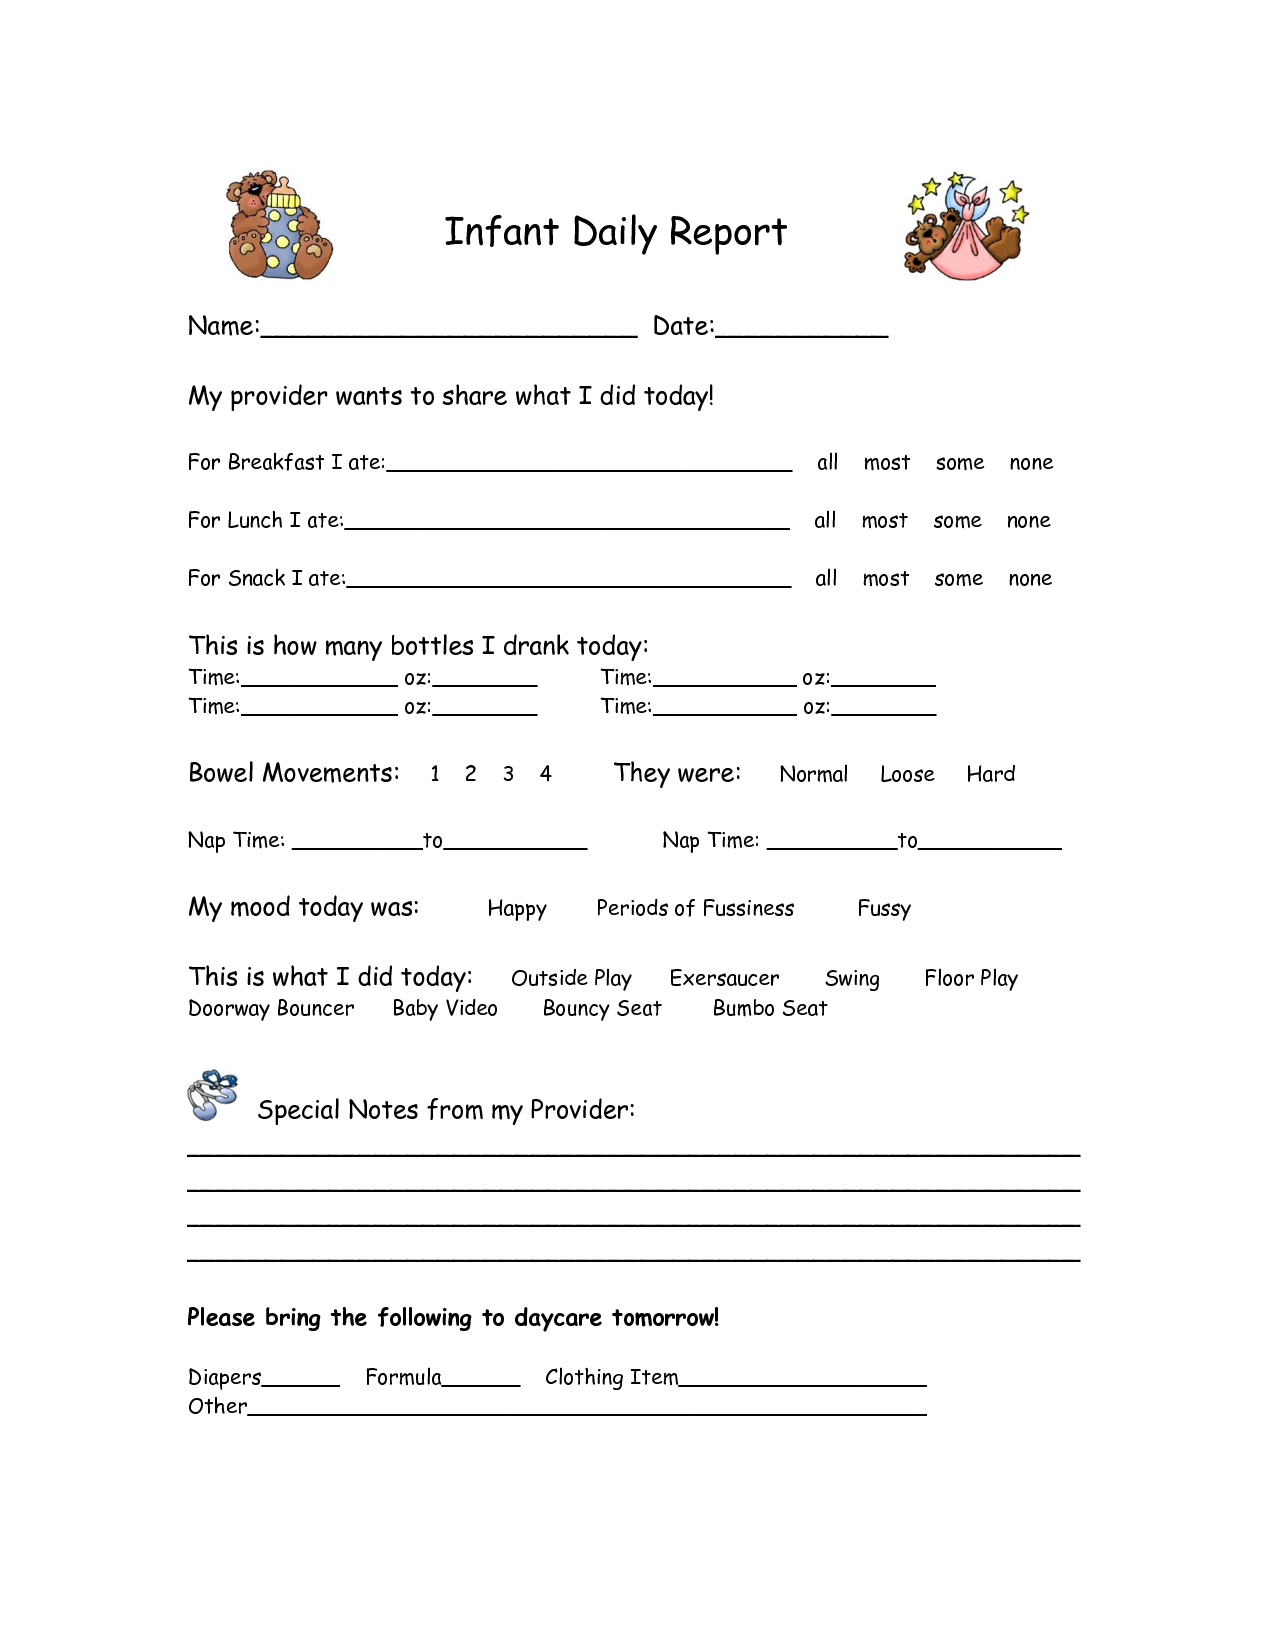 Infant Daily Report Sheet Google Image Result For HttpImg